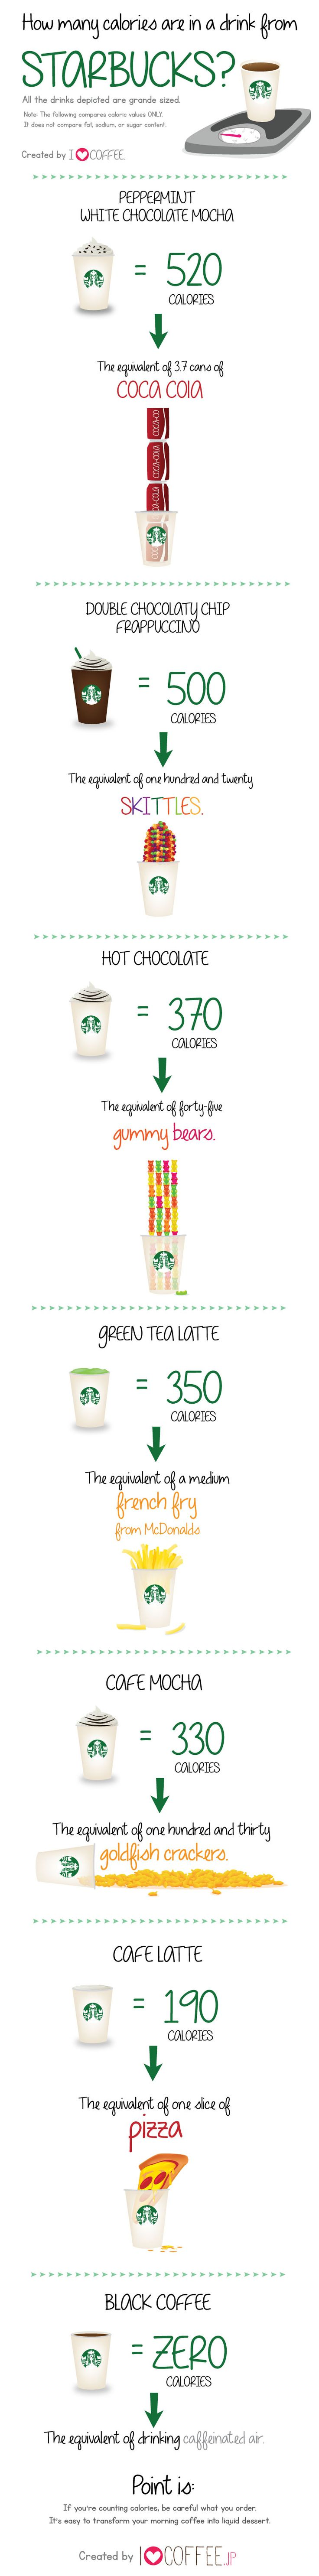 How Many Calories Are In A Drink From Starbucks #charlottepediatricclinic